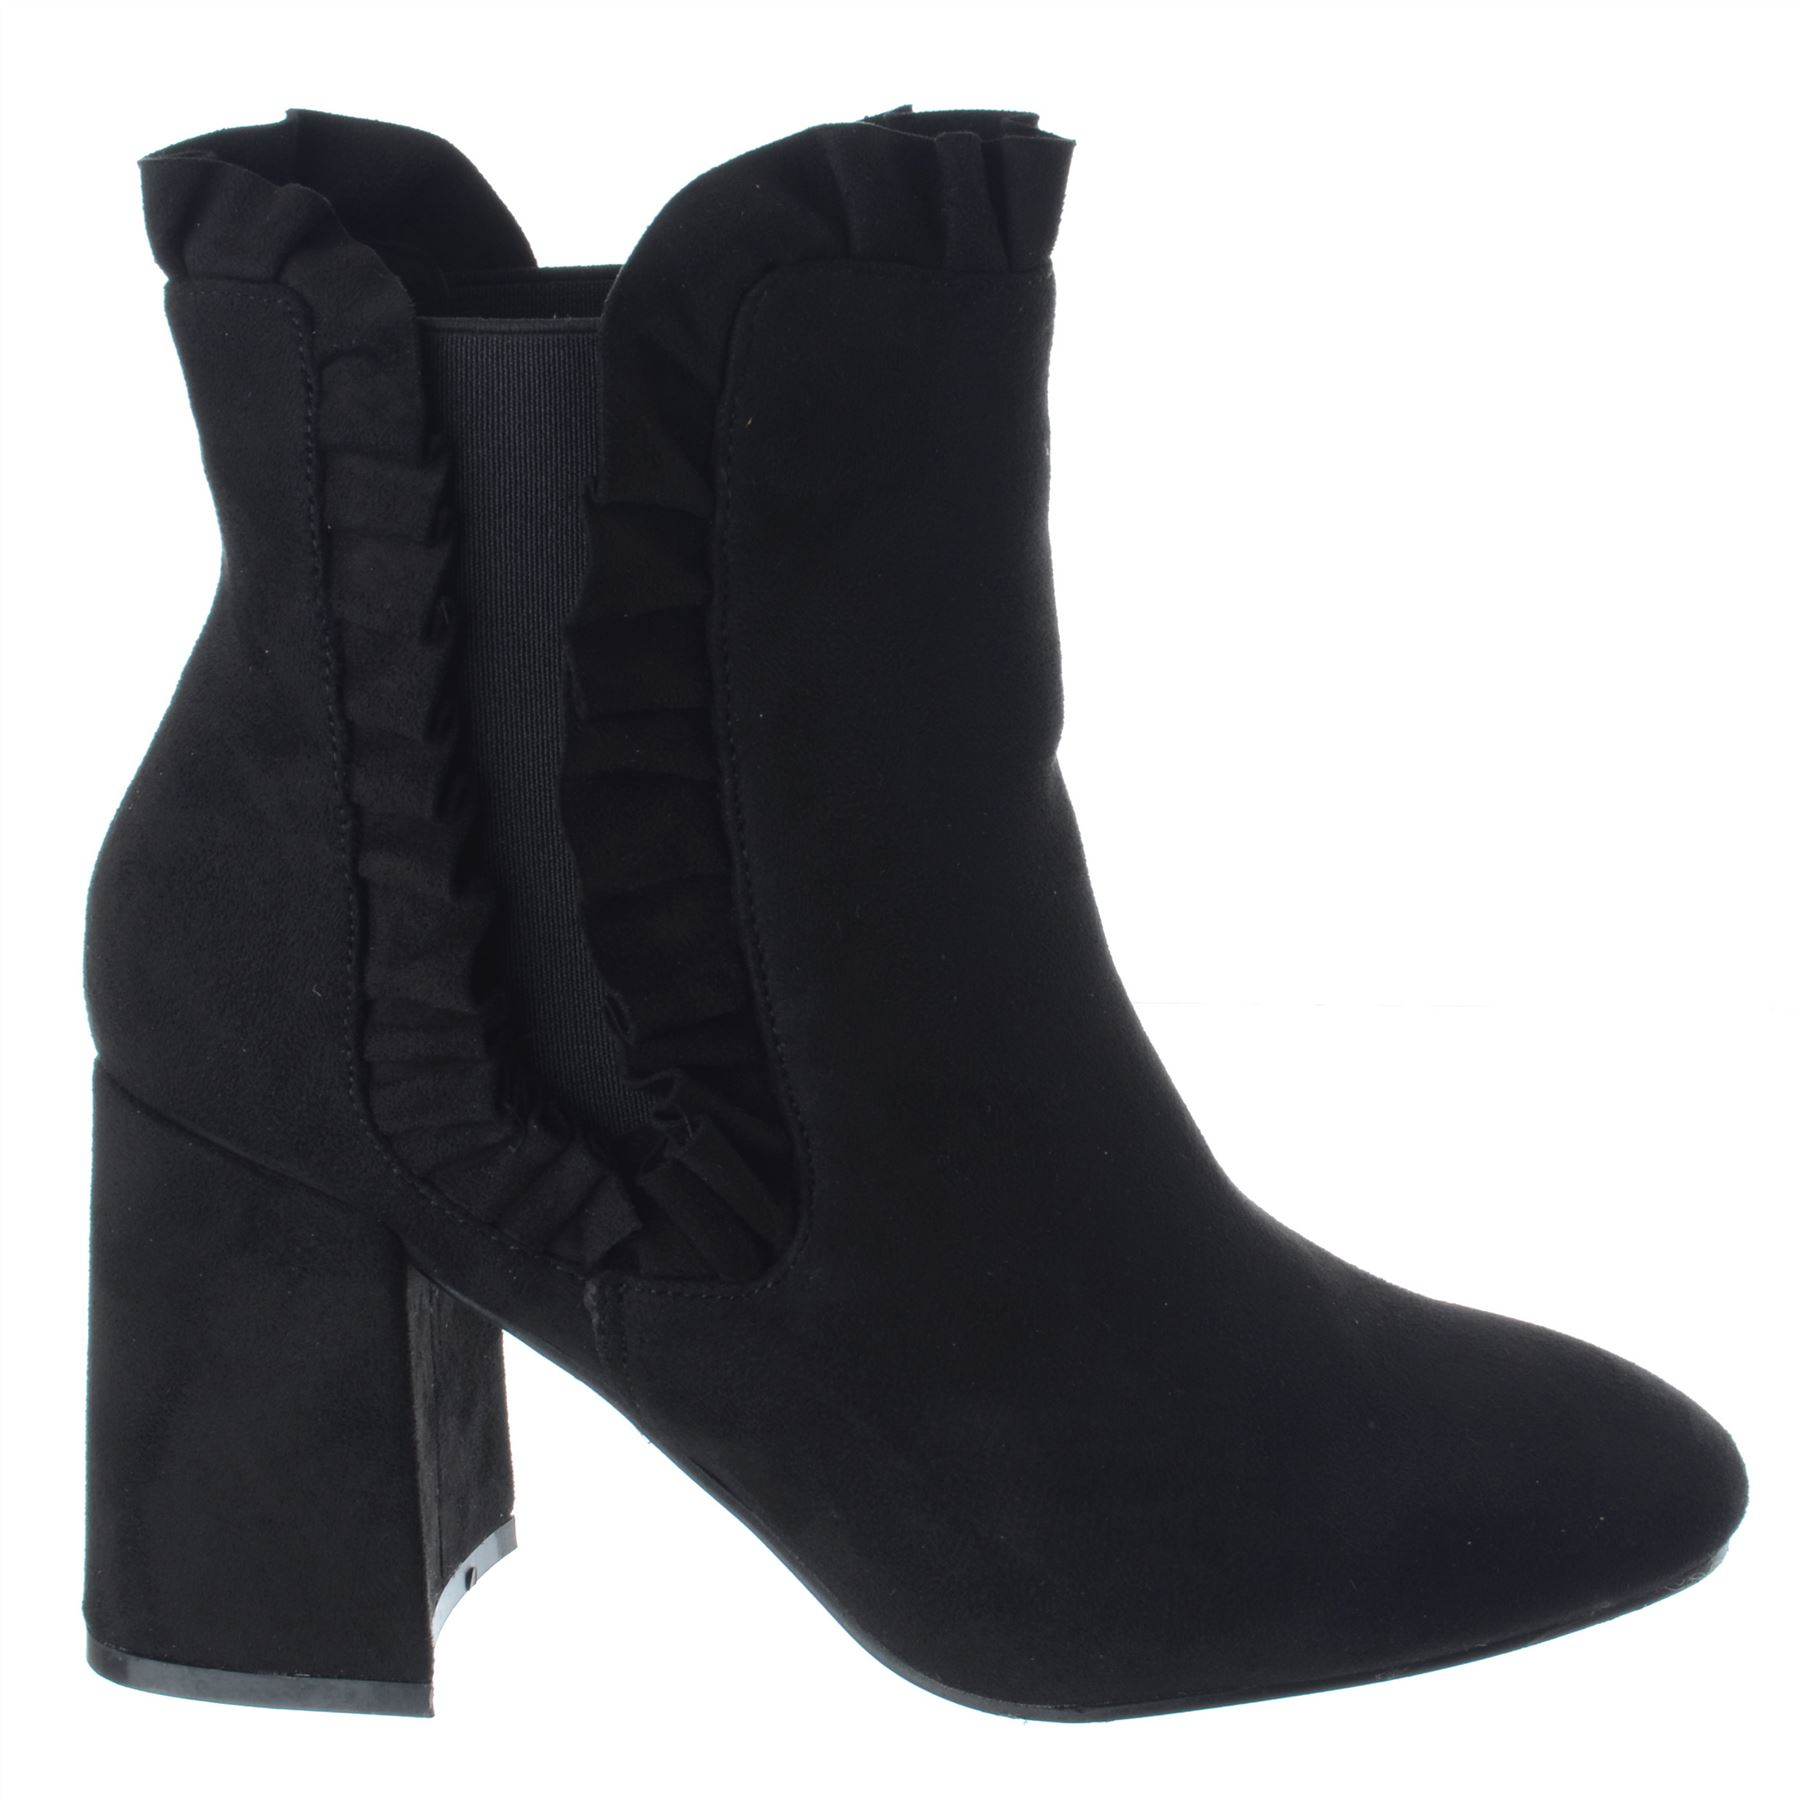 New Womens Ladies Pull On High Block Heel Ruffled Chelsea Ankle Boots Shoes Size